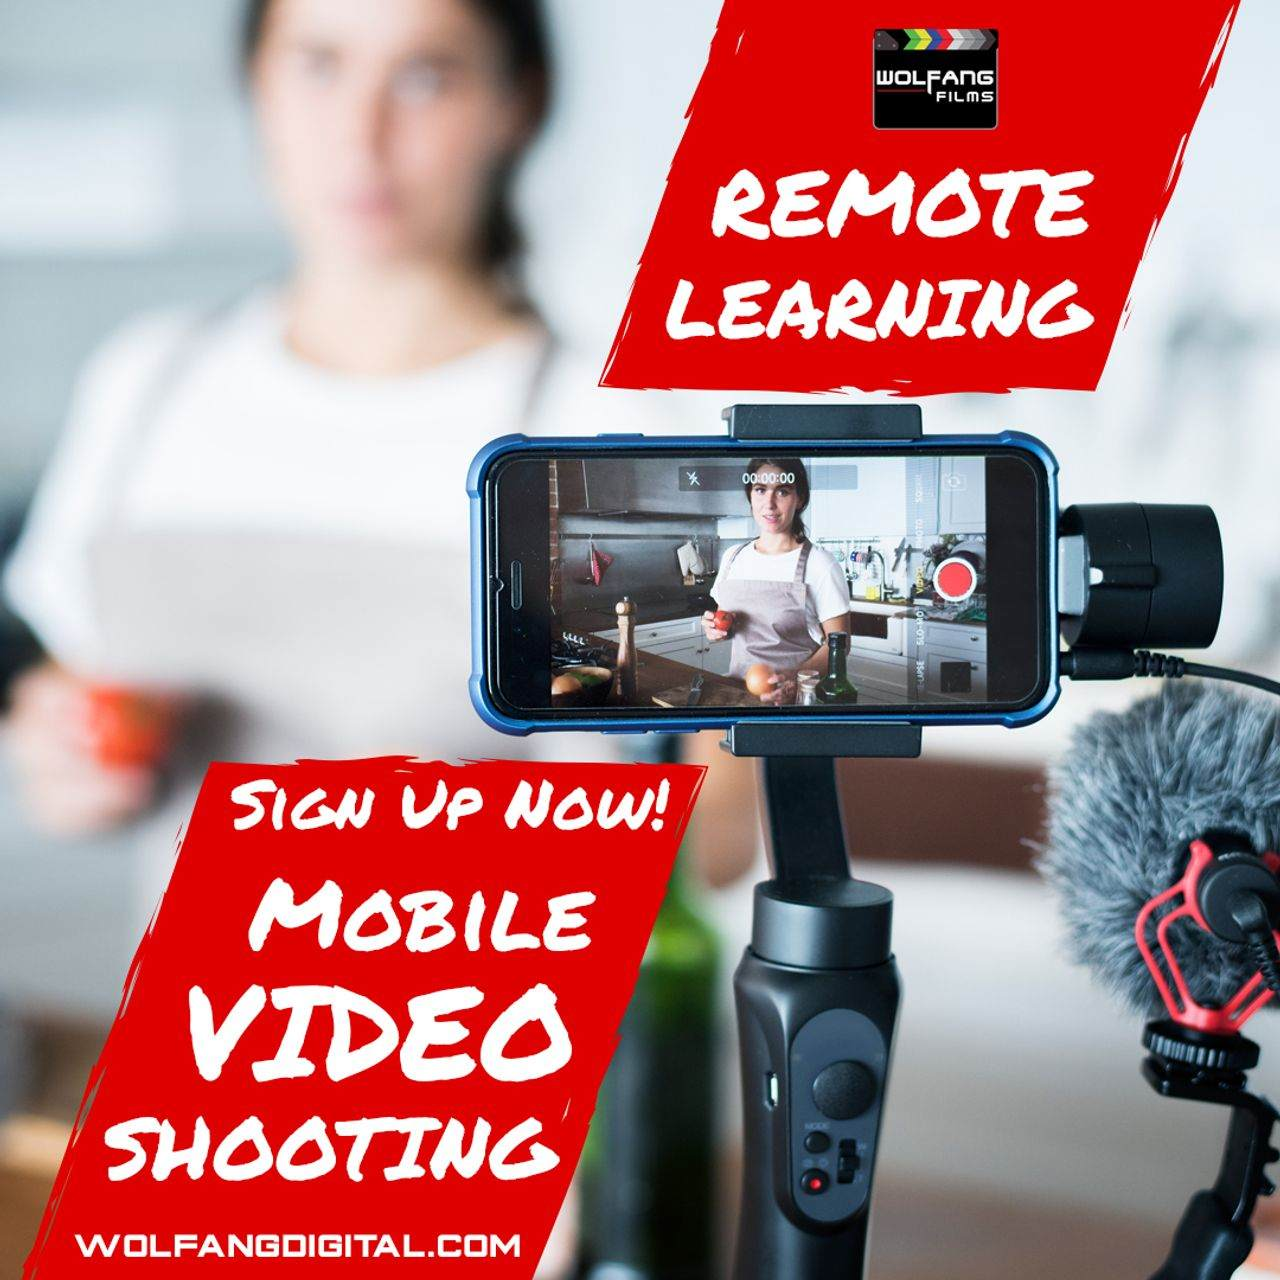 Online remote learning for smartphone mobile video shooting course by WolFang Digital